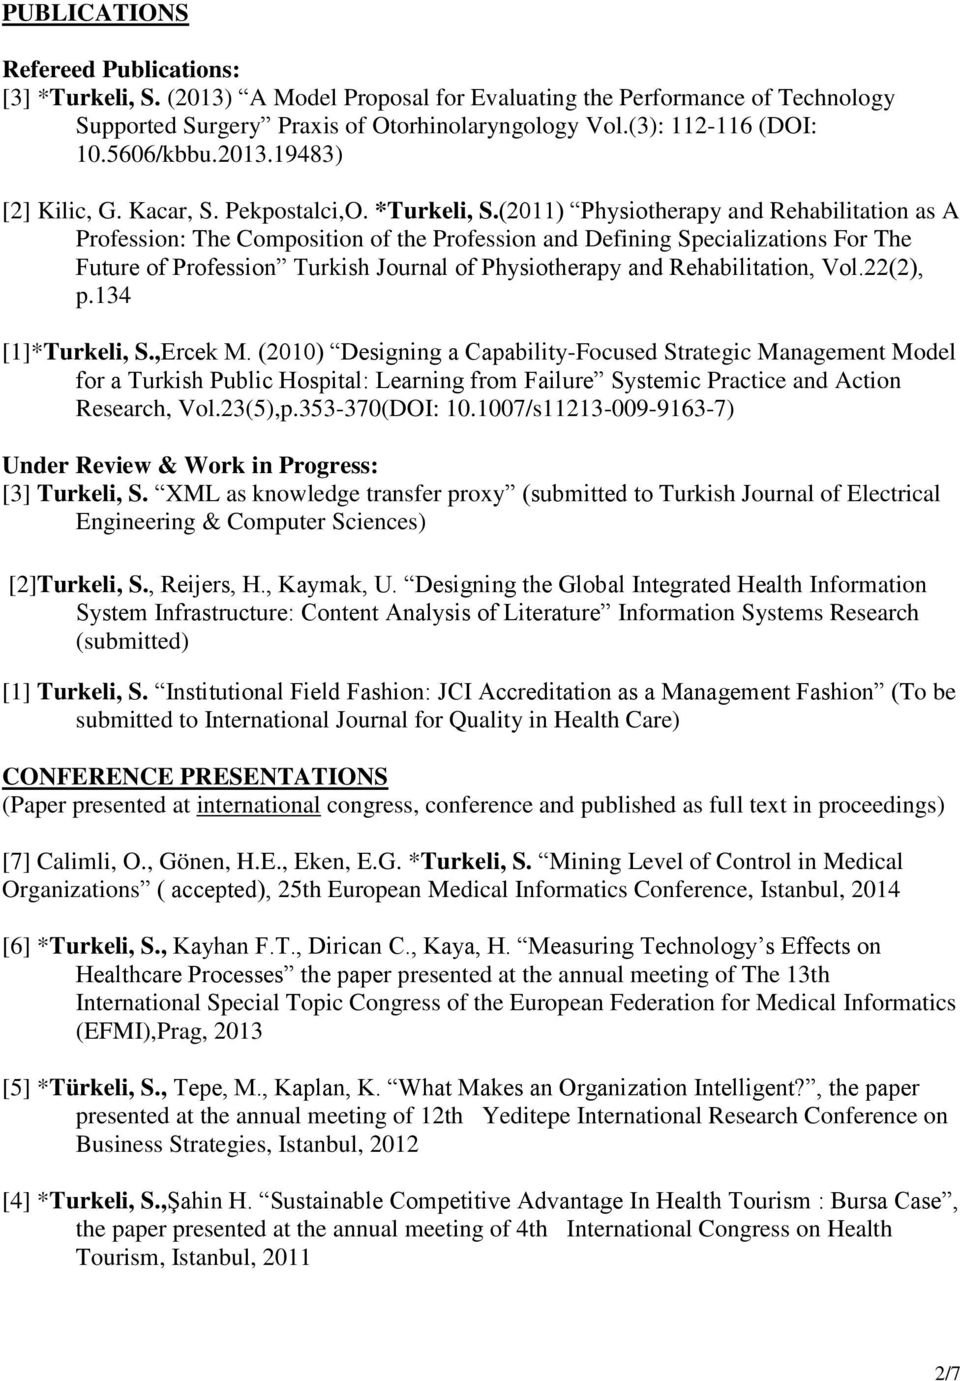 (2011) Physiotherapy and Rehabilitation as A Profession: The Composition of the Profession and Defining Specializations For The Future of Profession Turkish Journal of Physiotherapy and